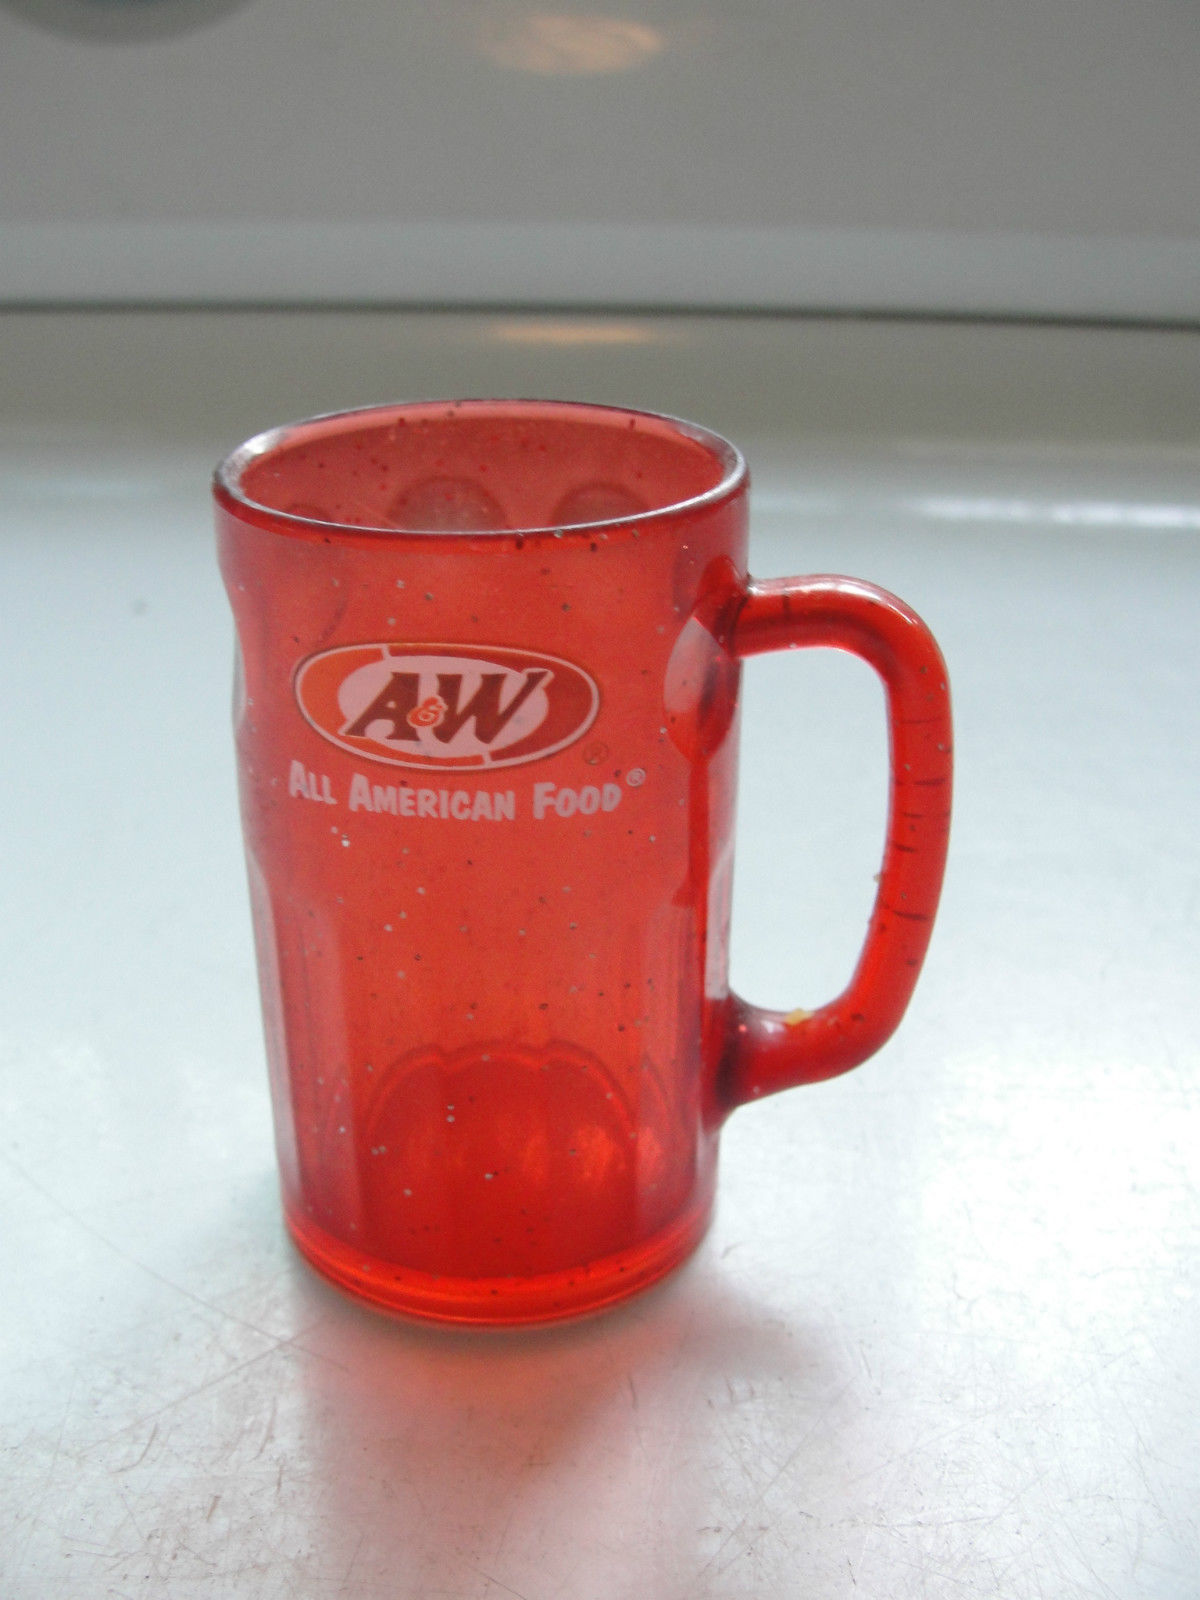 Miniature A & W red sparkle plastic mug, advertising